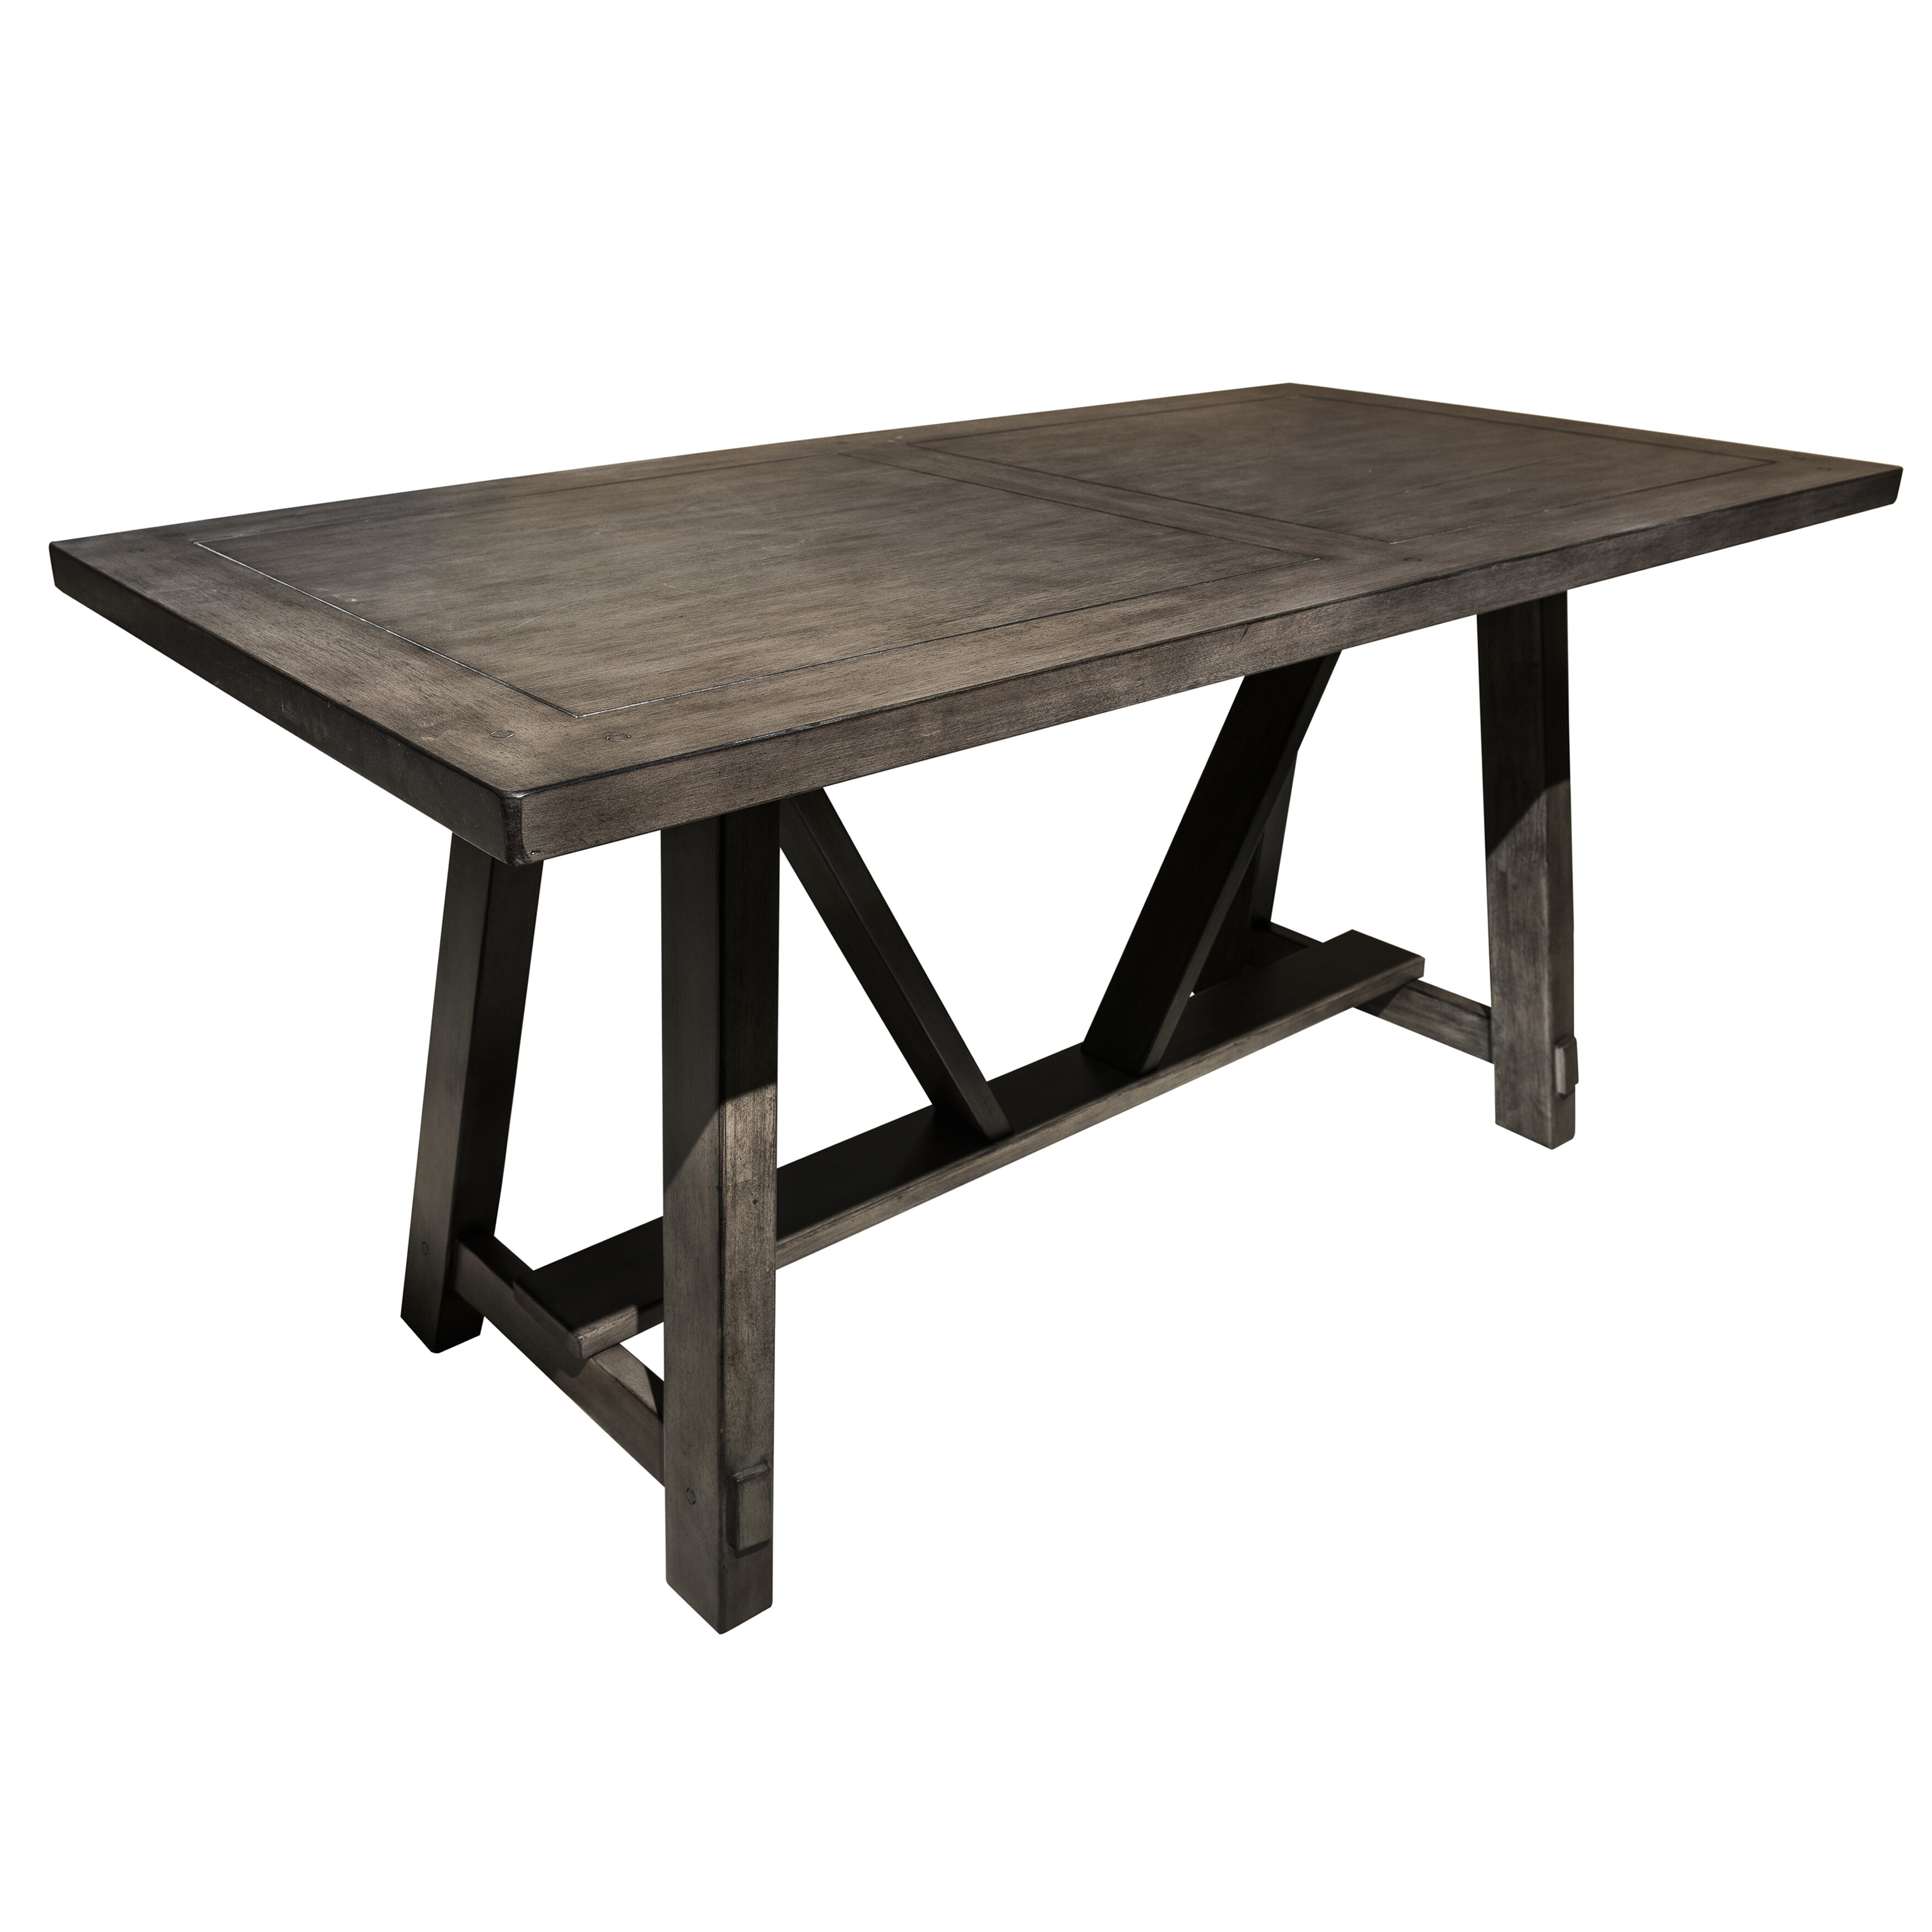 Leming Trestle Dining Table